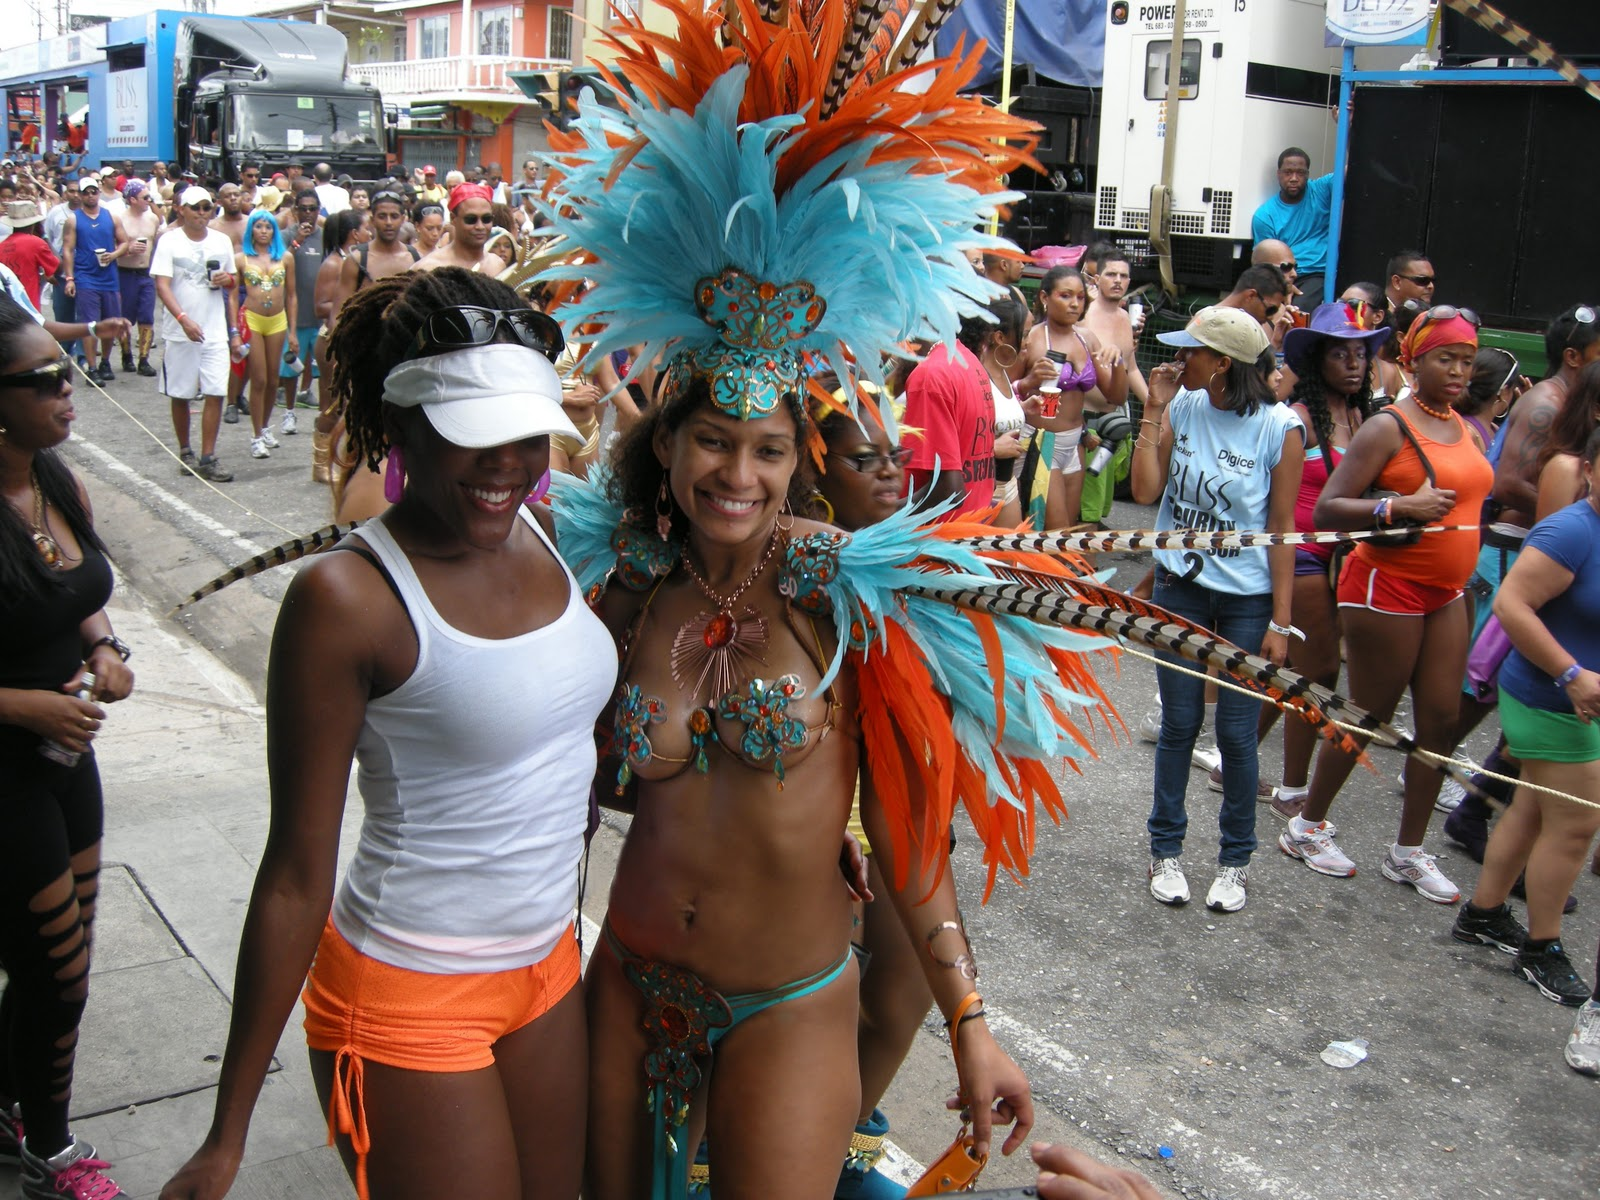 rio_carnival_costumes_room_suggestion. Where to stay during Rio Carnival?  sc 1 st  RoomSuggestion & Ten Things to Know about the Rio Carnival